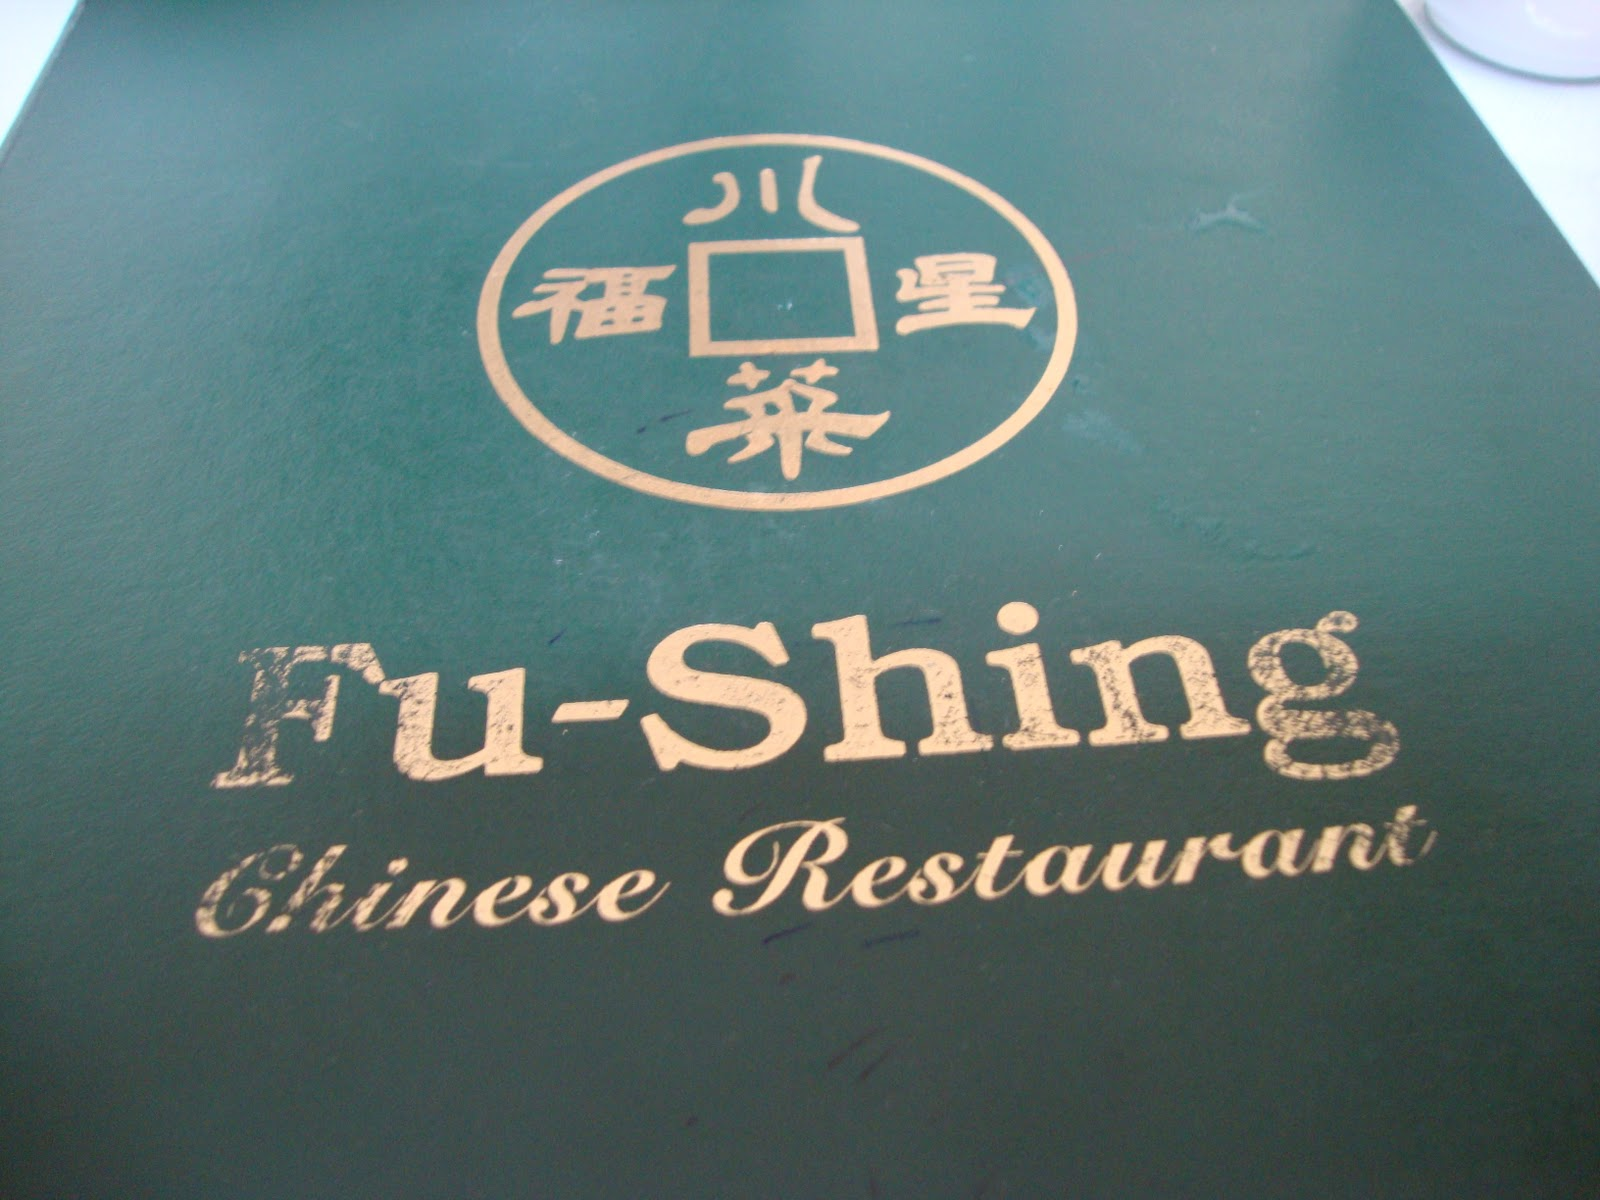 Unlike A Lot Of Chinese Restaurants I Could Name That Give You Only Few Options For The Lunch Special And Never Items Want Fu Shing Has